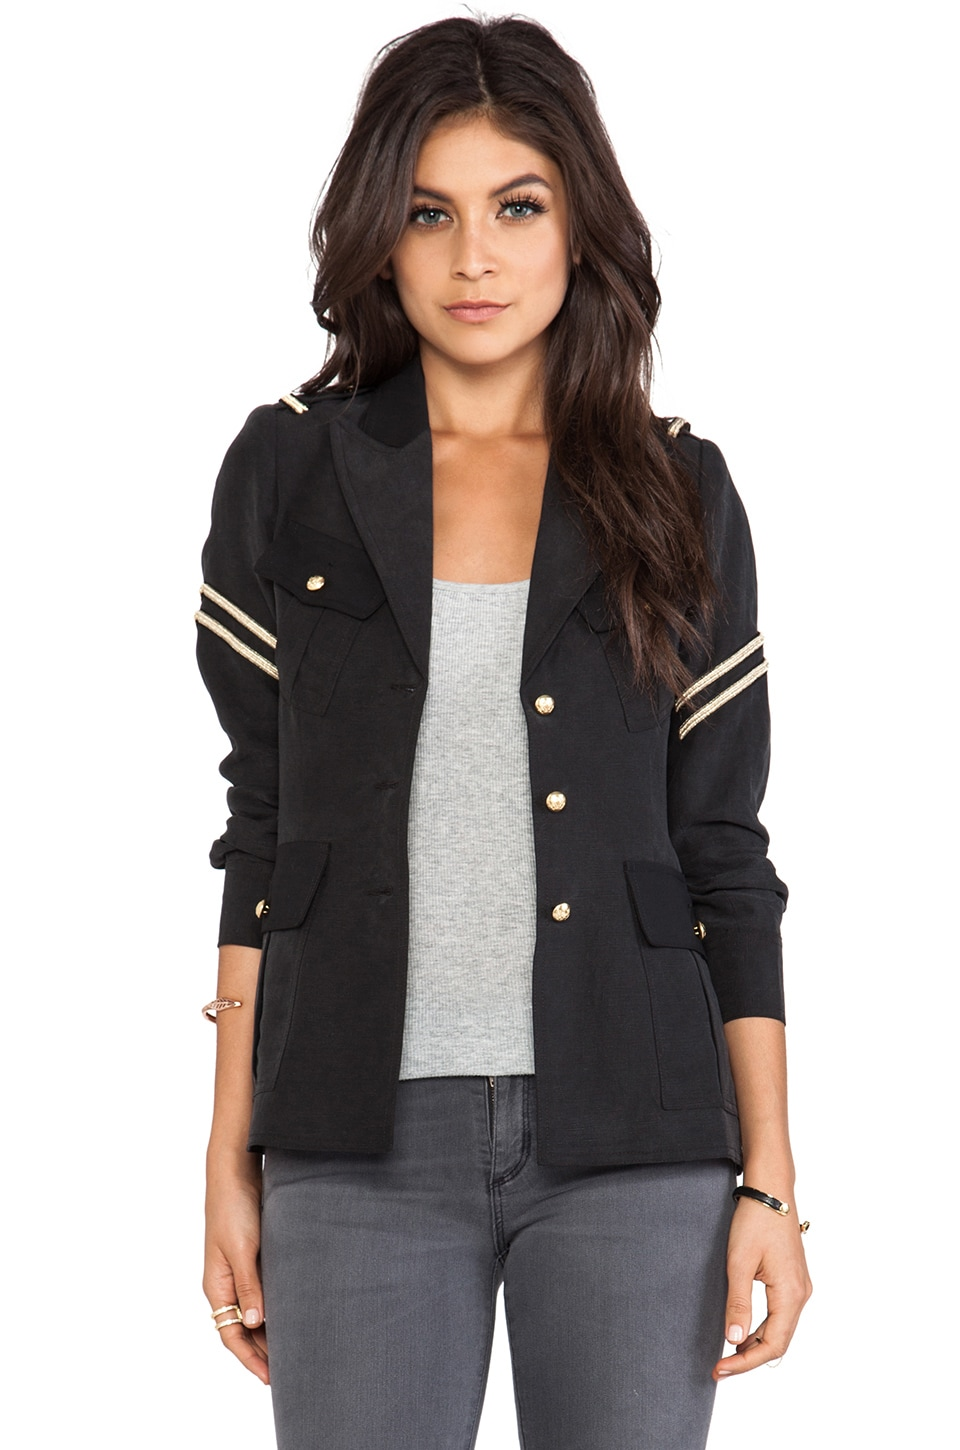 Smythe Military Jacket in Black Fade